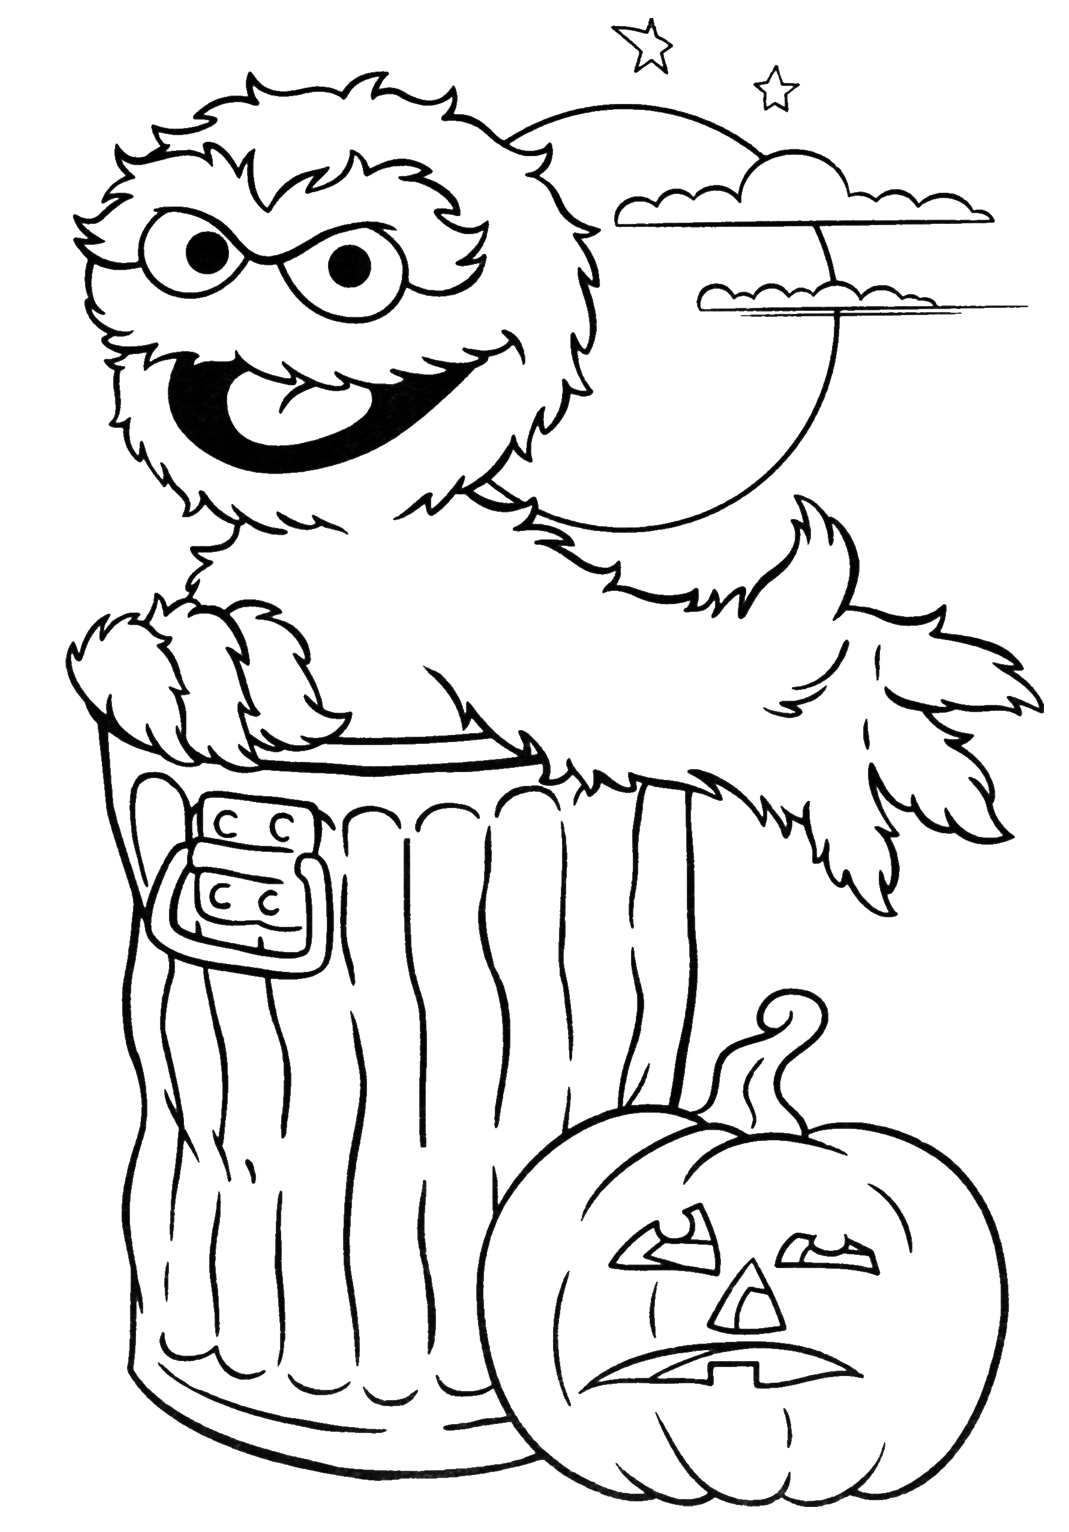 halloween printouts for coloring pages - photo#21